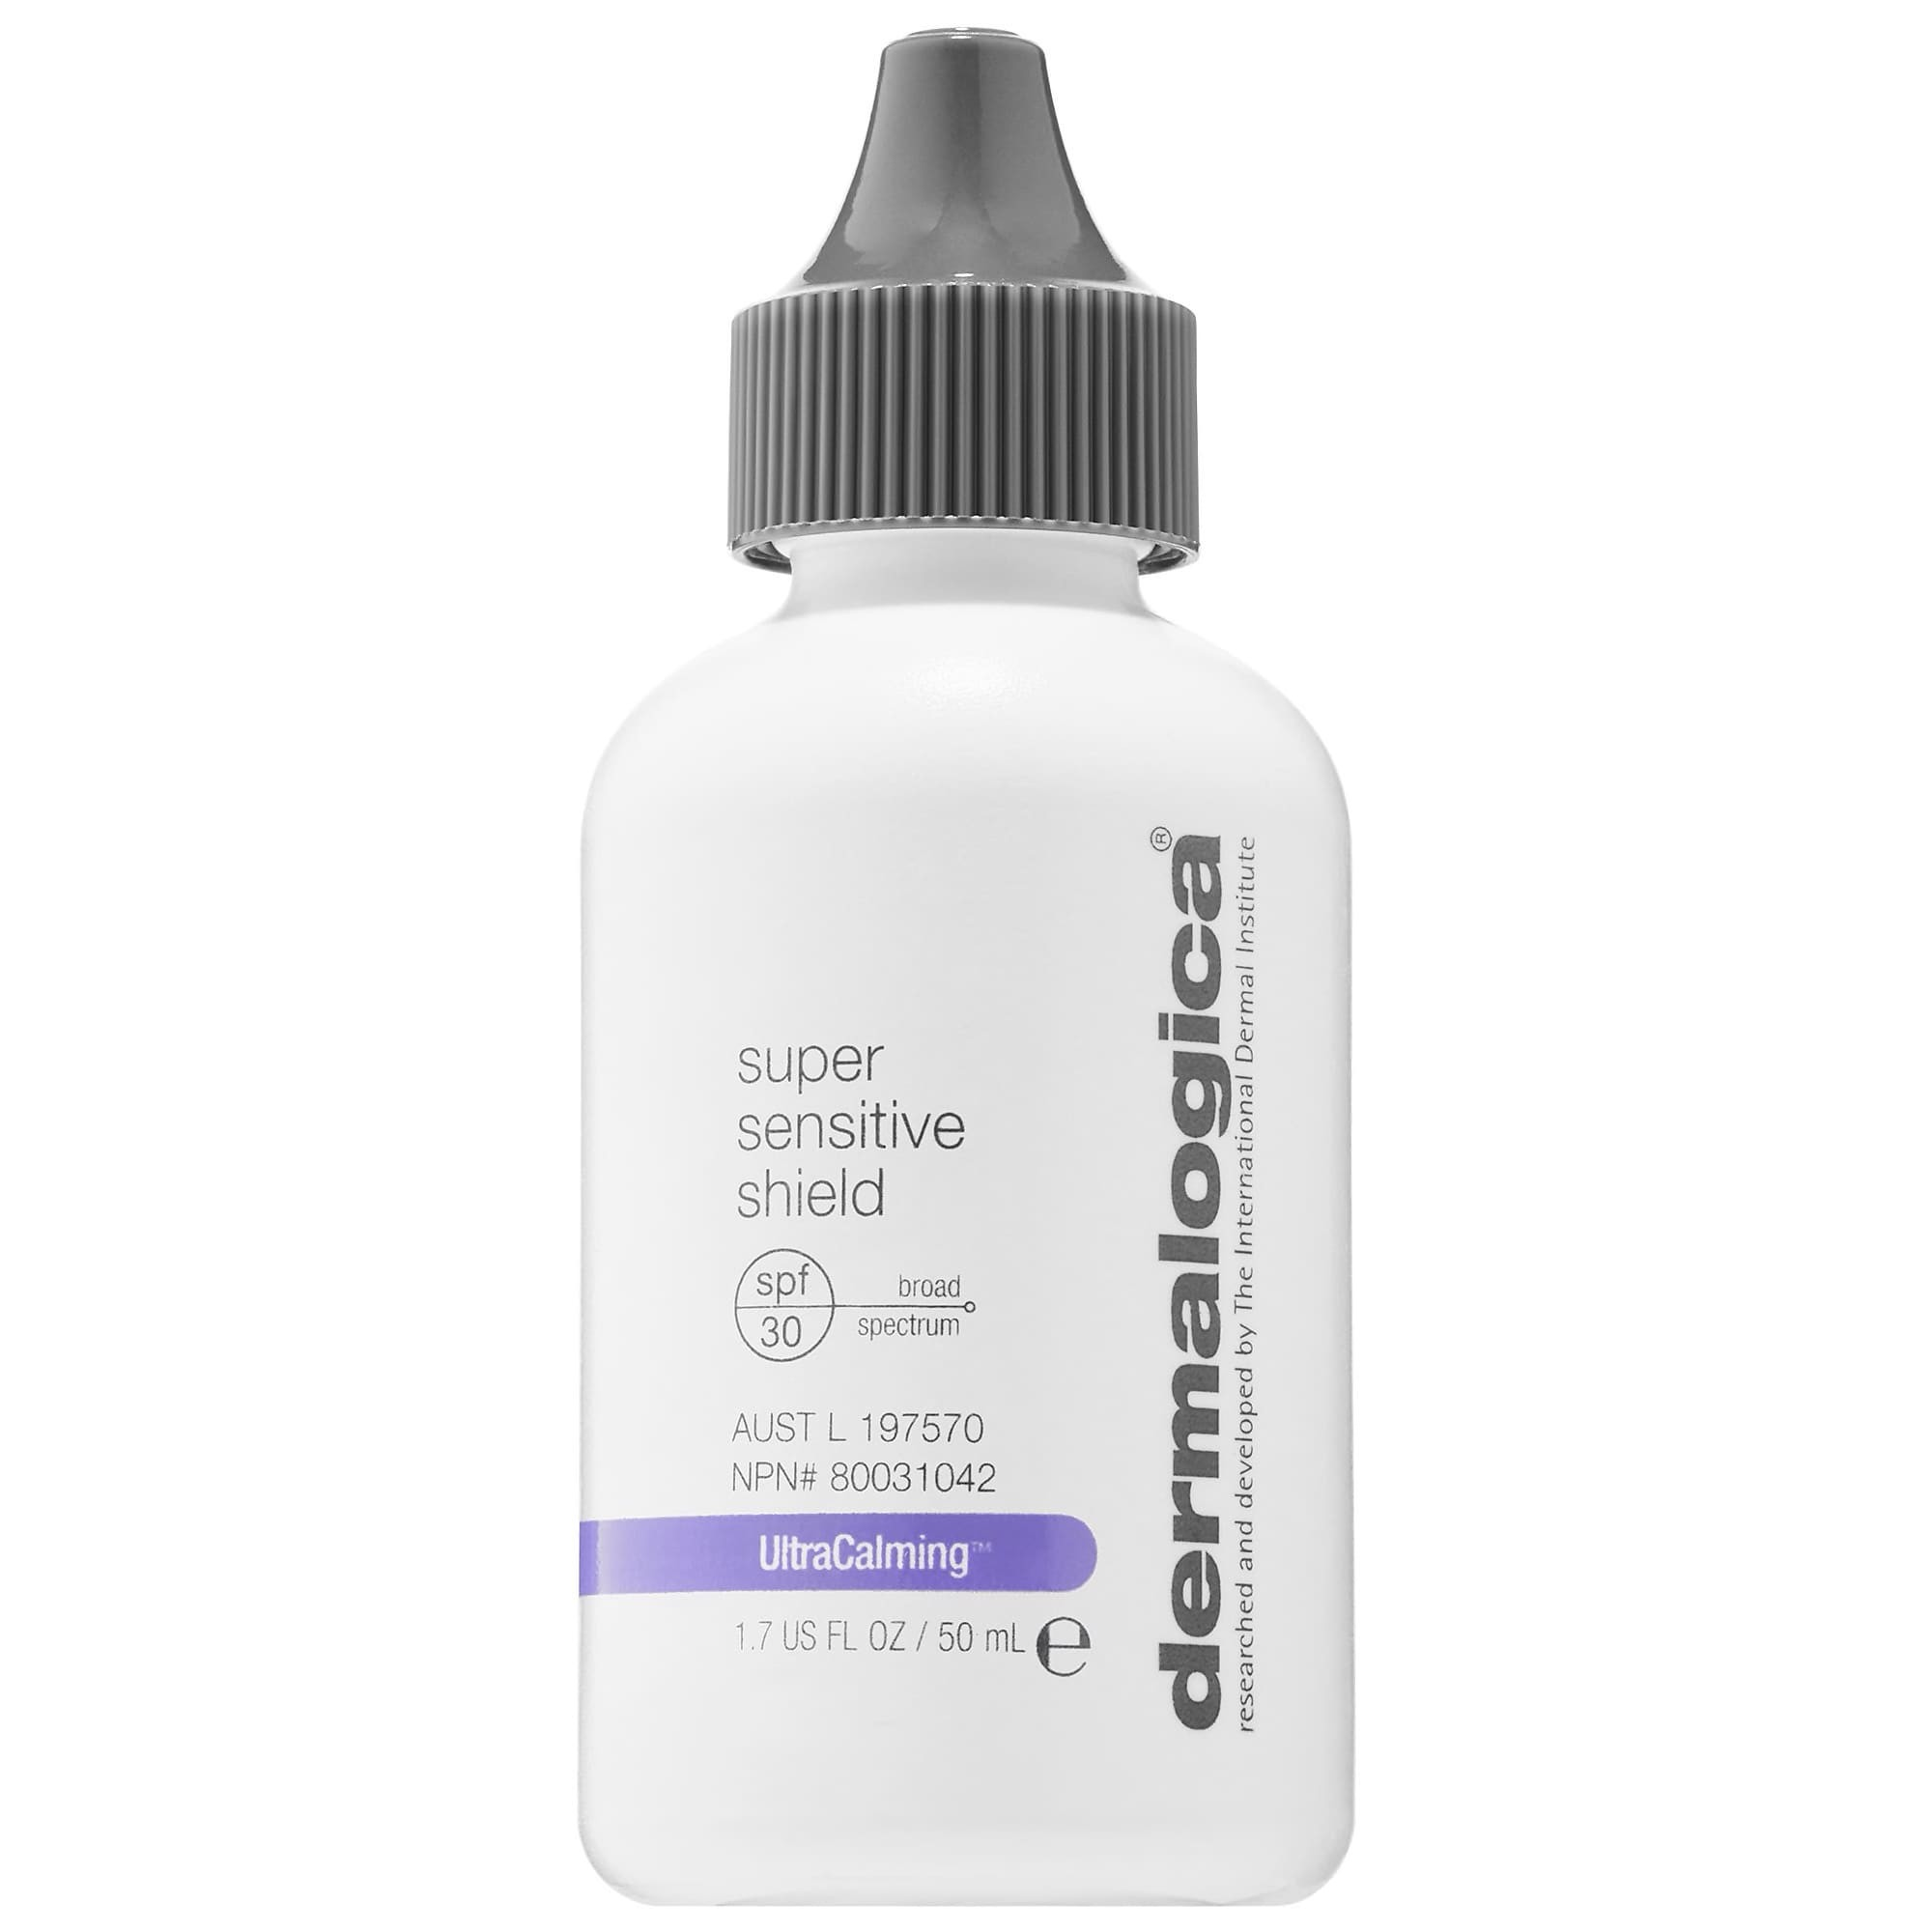 Dermalogica Super Sensitive Shield SPF 30